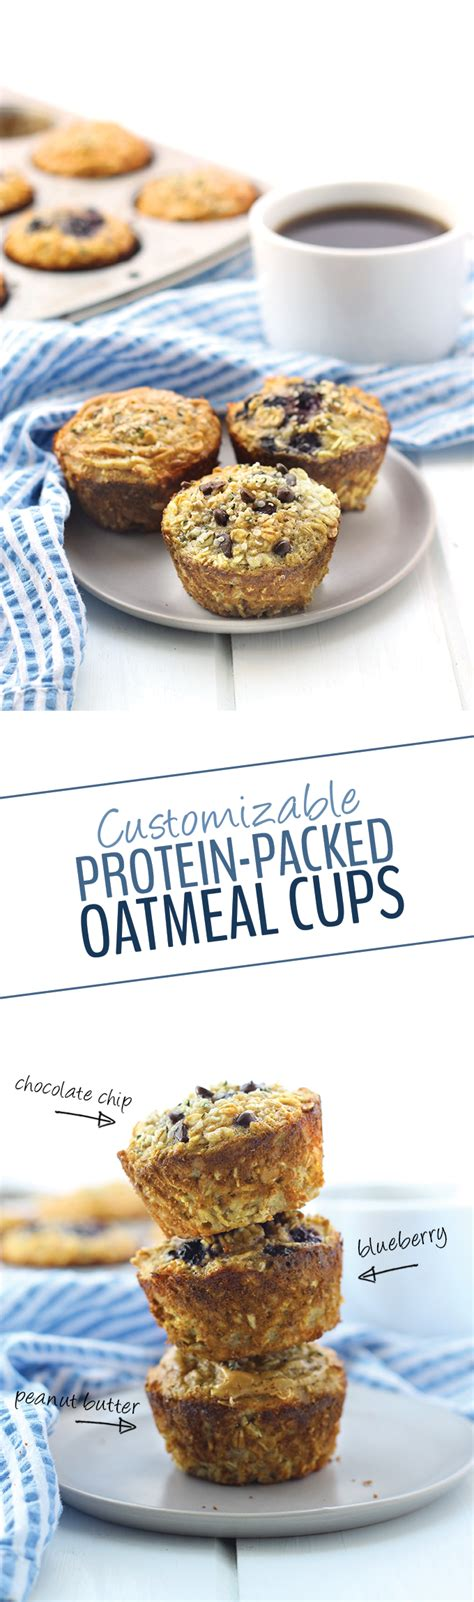 protein 1 cup oatmeal customizable protein packed oatmeal cups the healthy